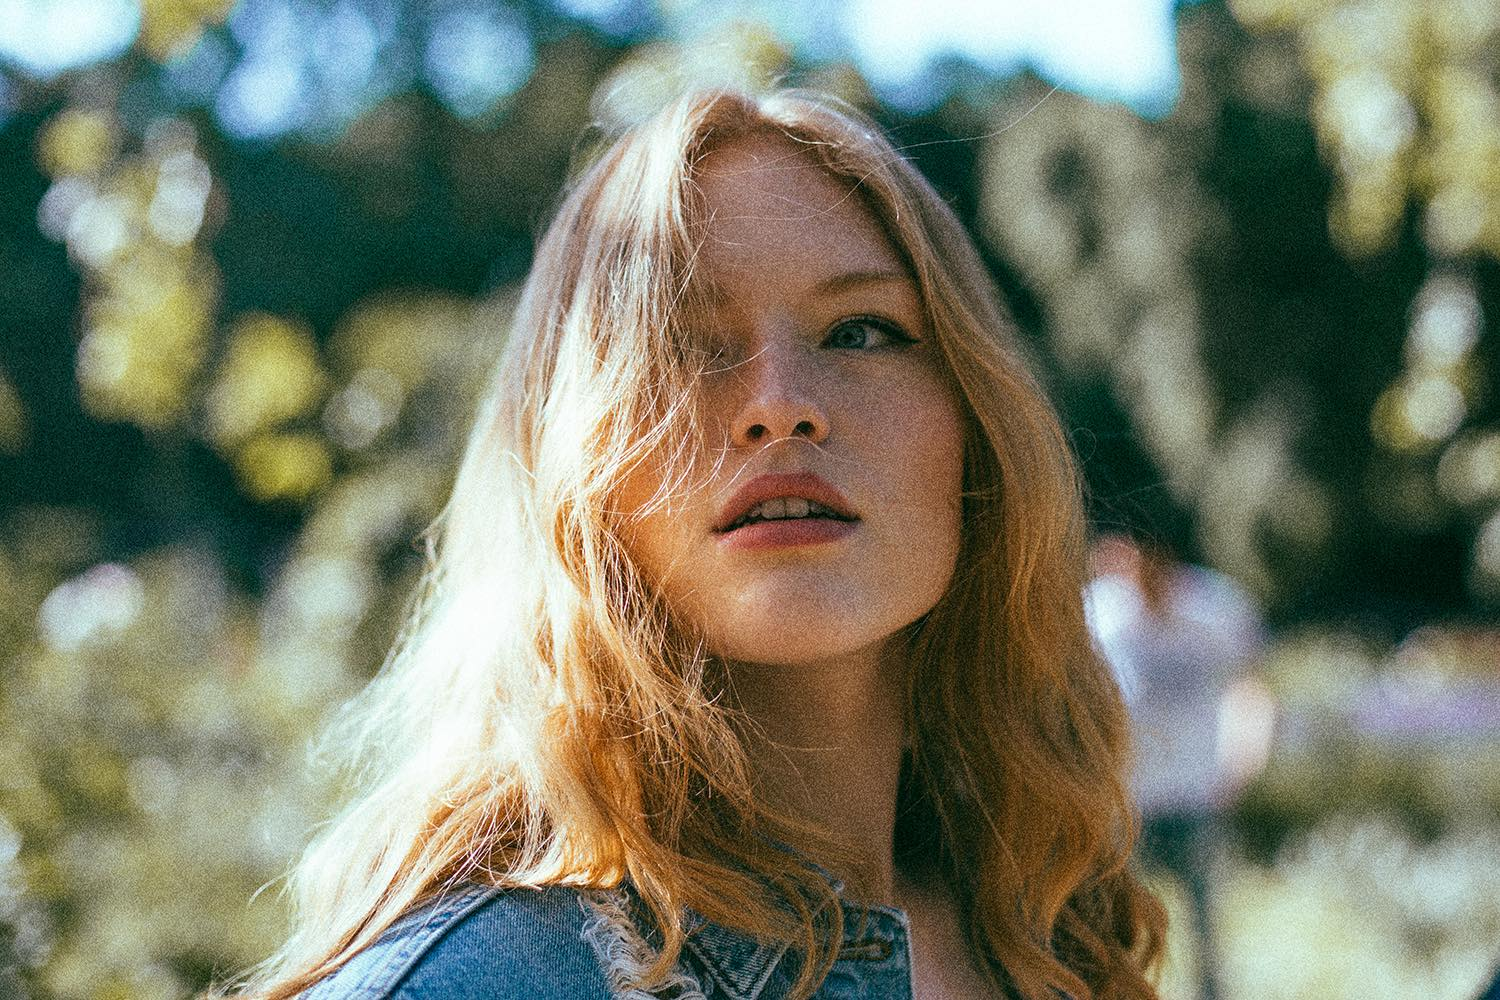 'A great look for all independent labels': Freya Ridings breaks into UK chart Top 10